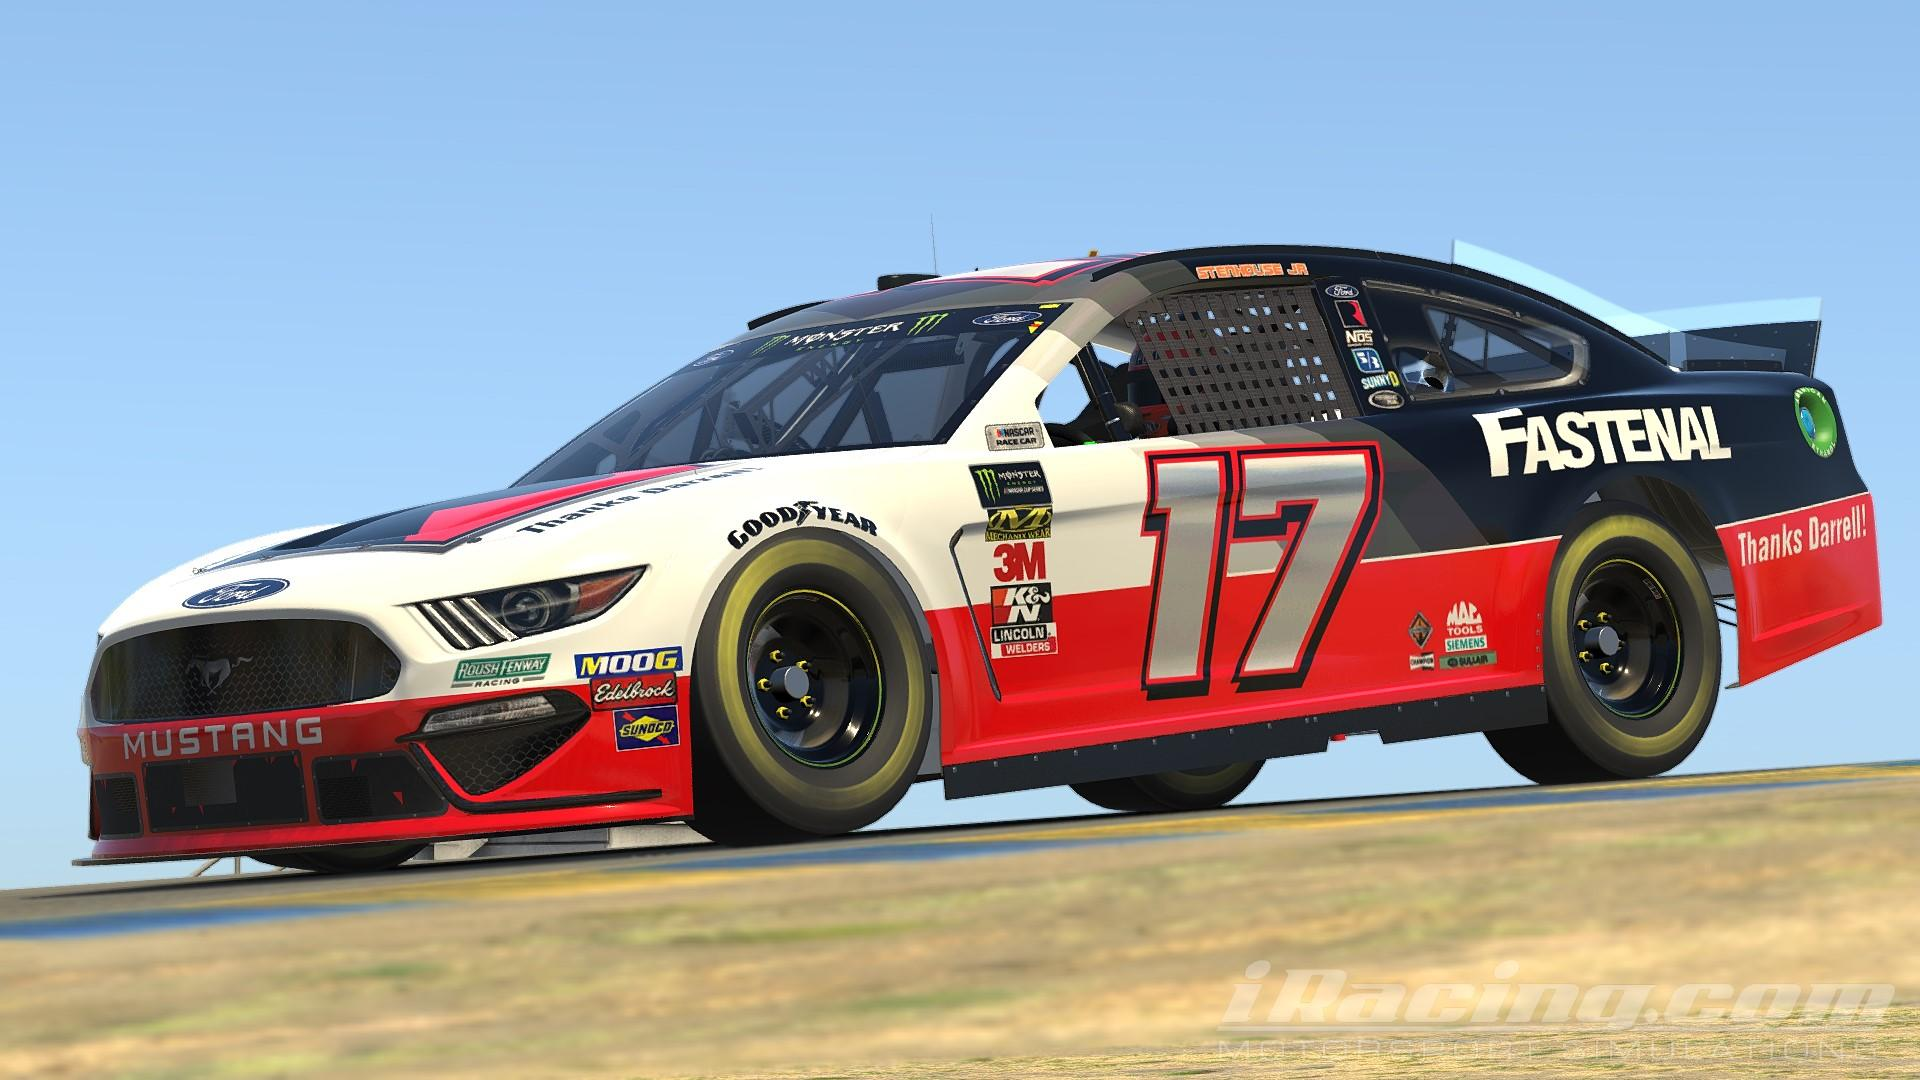 Preview of Ricky Stenhouse Jr Tribute to DW  by Nicholas Doucette